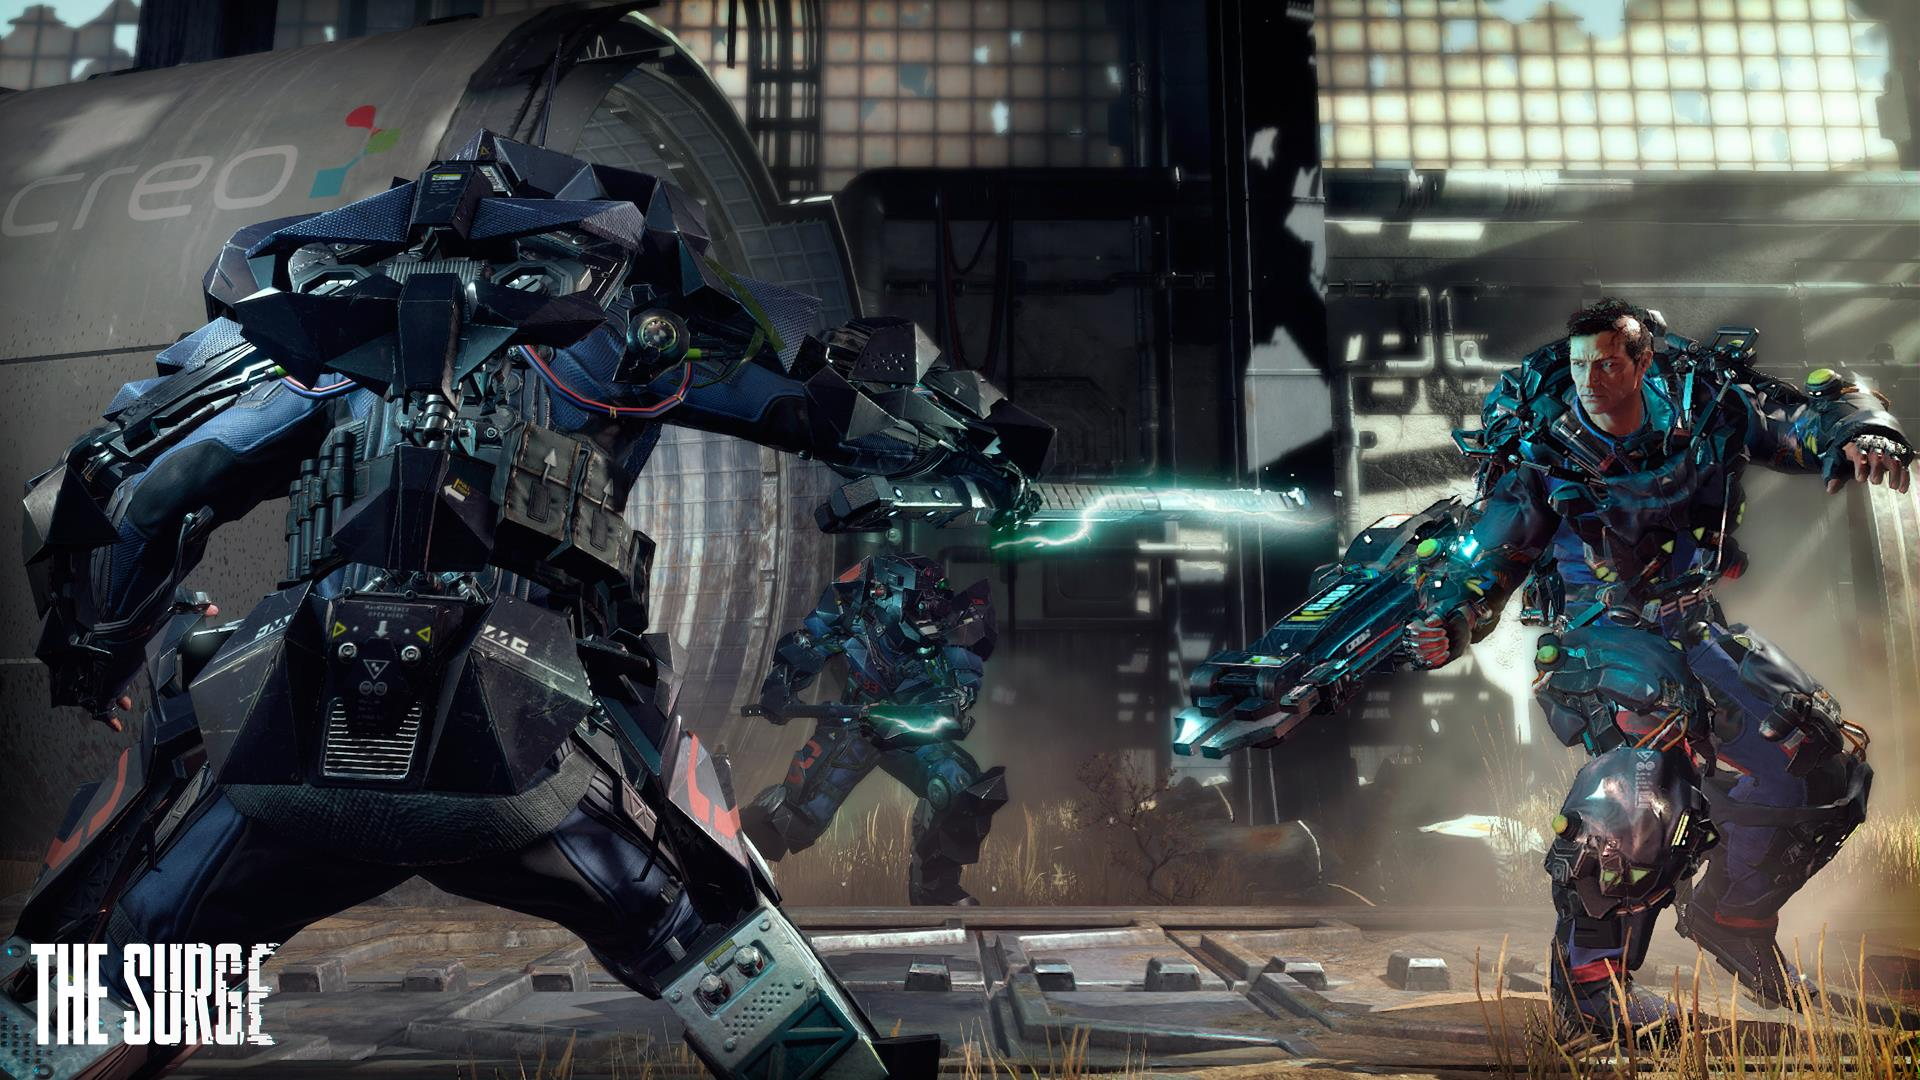 Action RPG The Surge Will Run at 1080P on PS4 and 900P on XB1